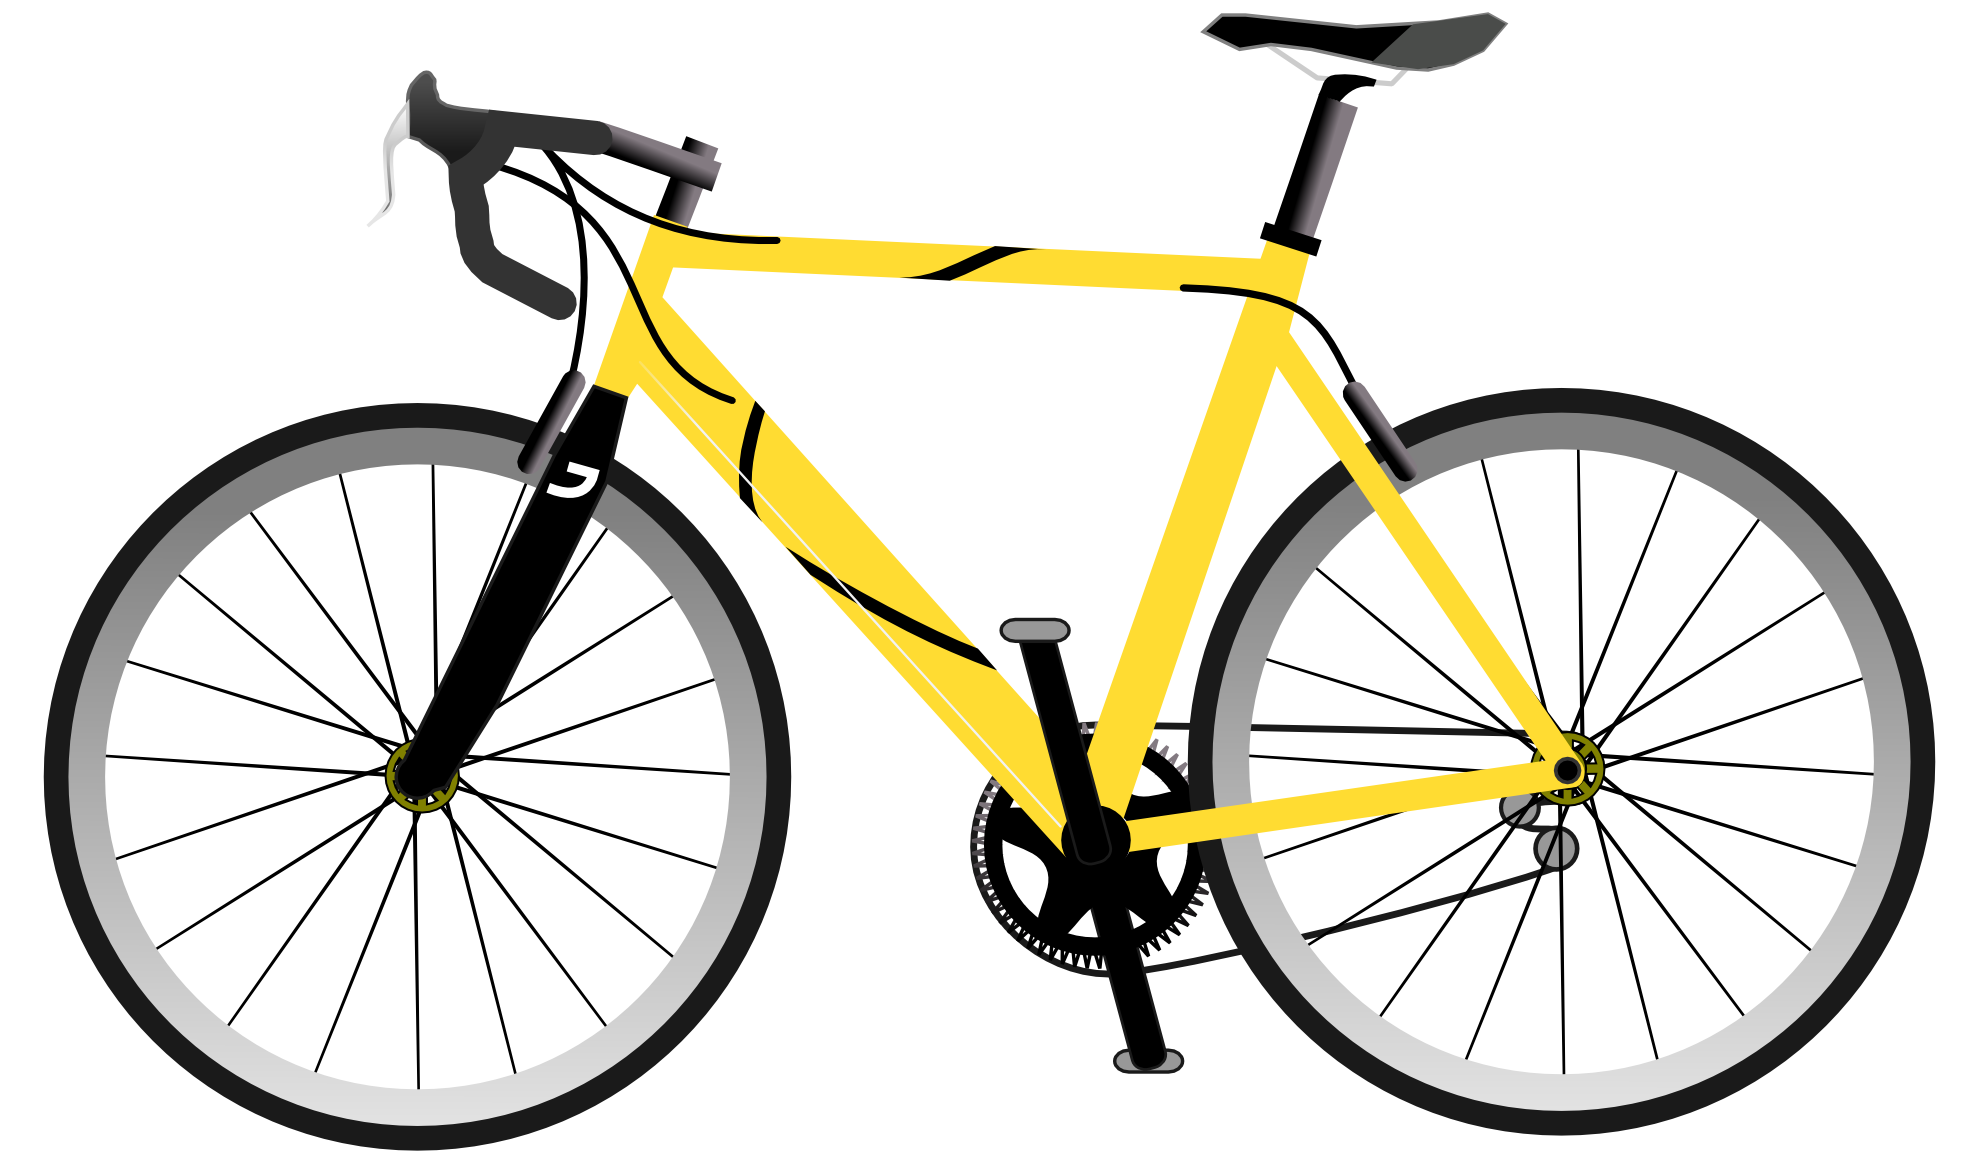 Bicycle png image purepng. Cycle clipart business cycle